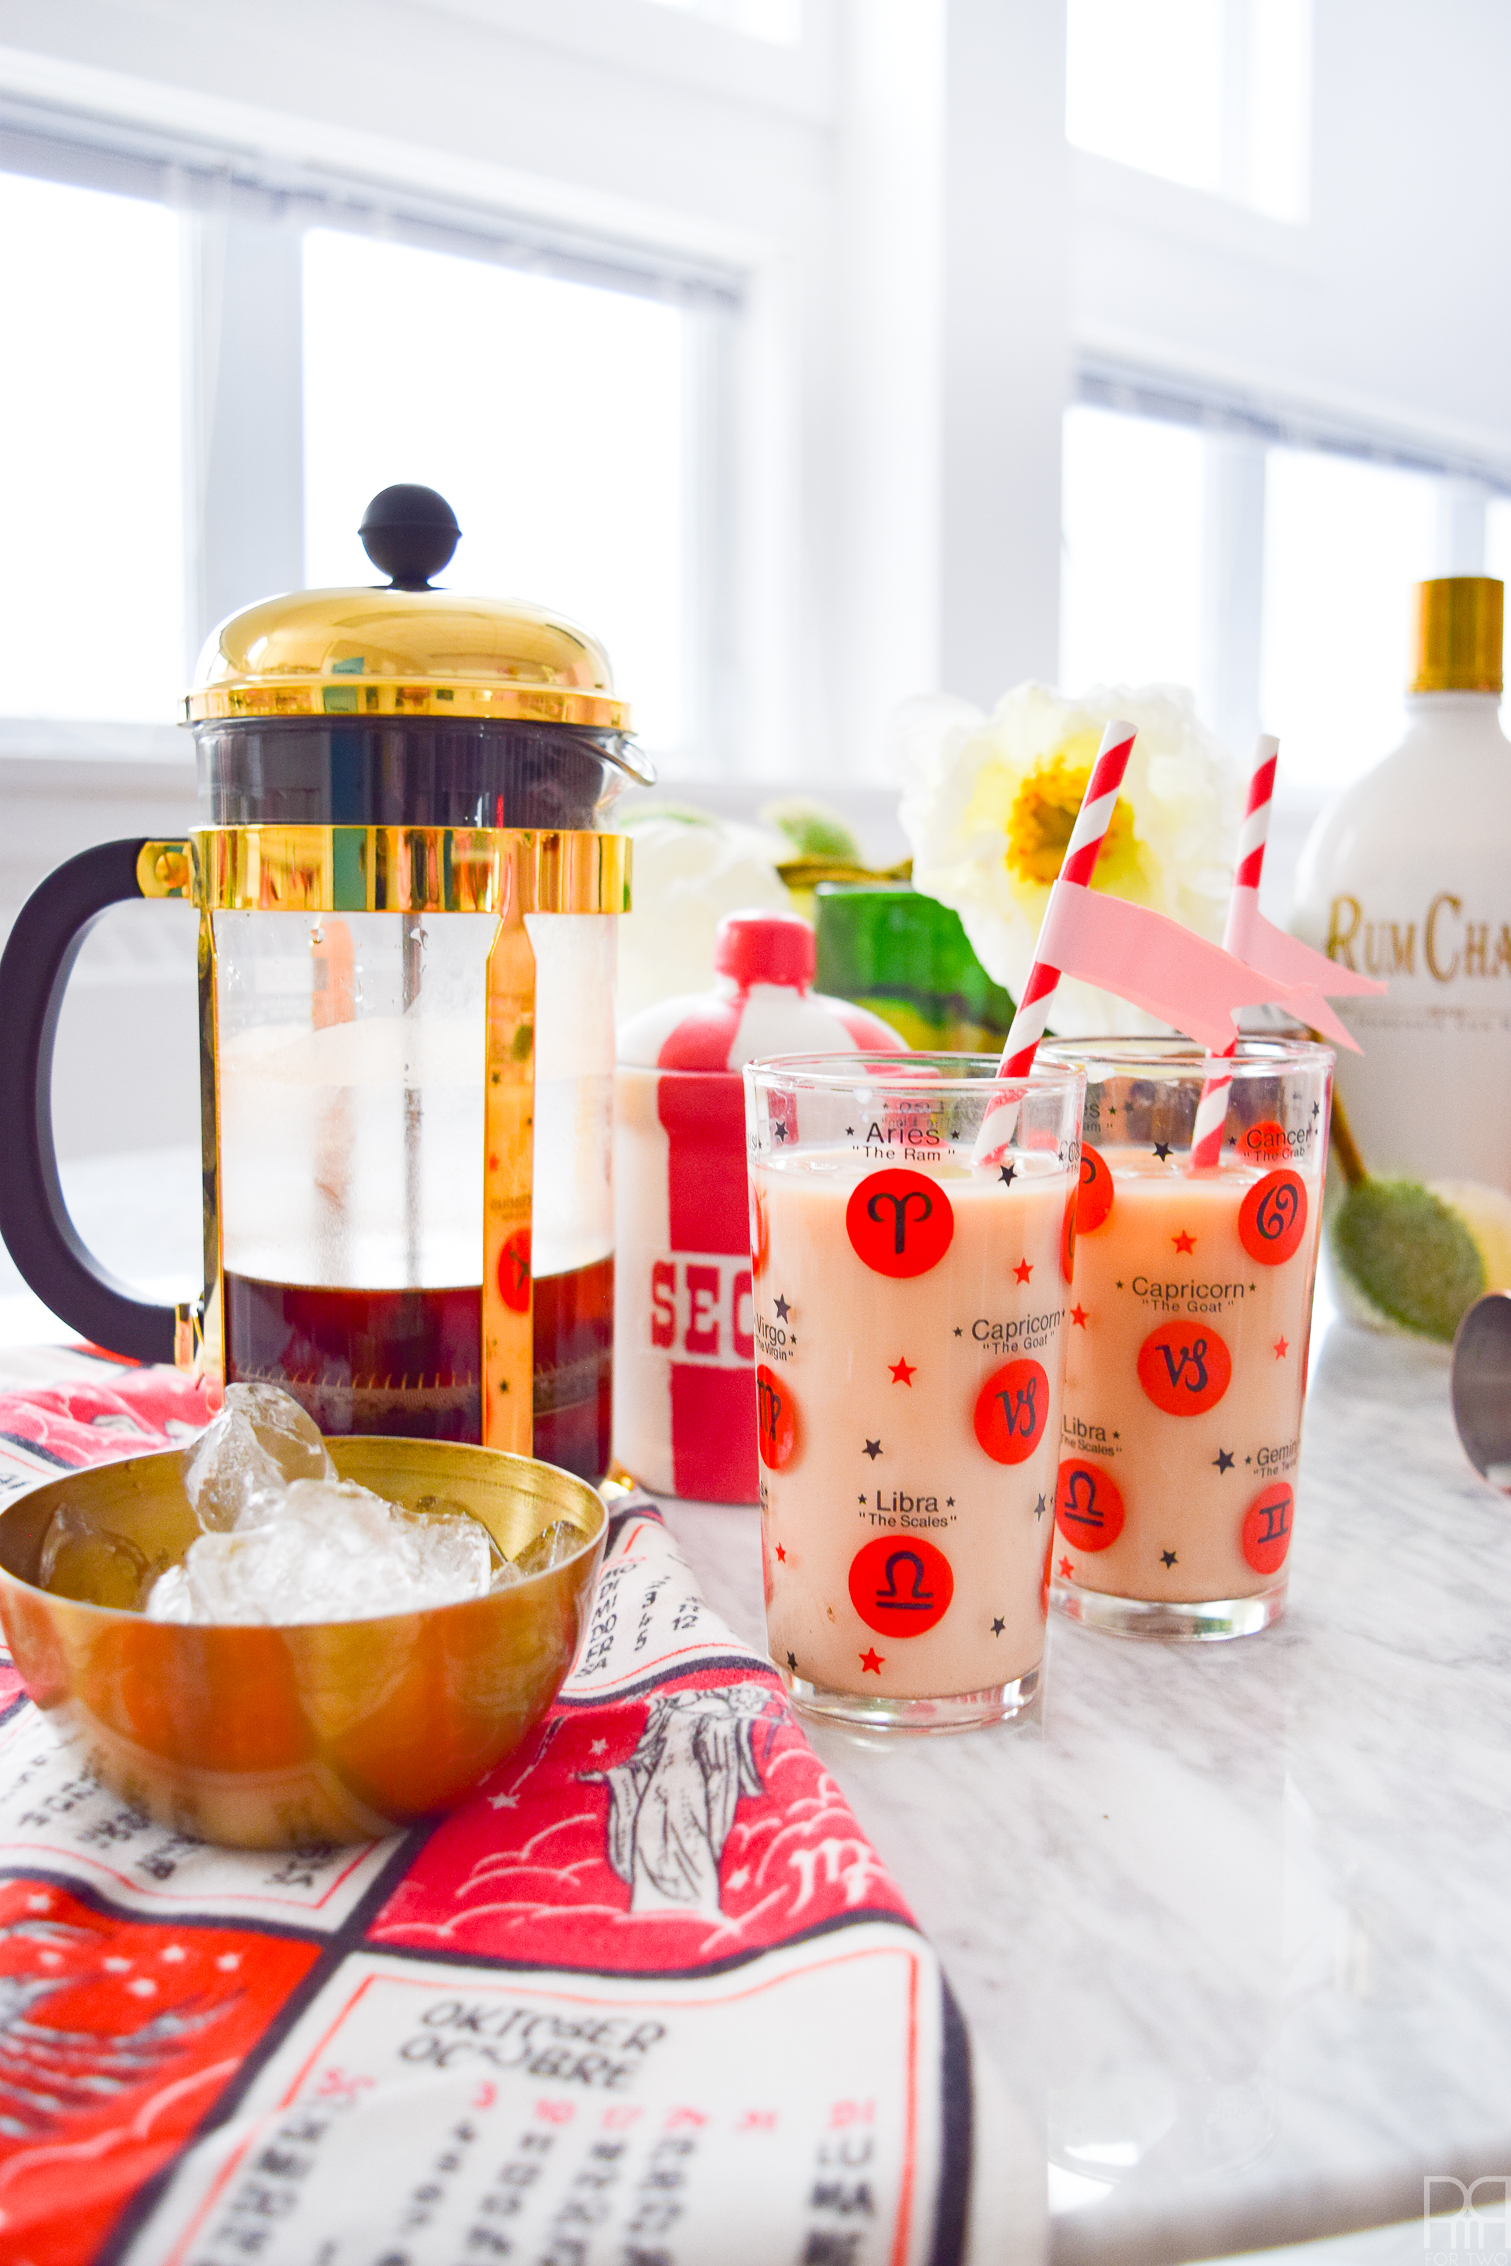 Make a Cinnamon French Toast Coffee Cocktail for your next brunch of weekend gathering. They're the perfect alternative to mimosas, and are a nice treat for afternoons when you want to unwind. Don't forget your cinnamon whisky or rum chata though! oh! and the cold brew coffee